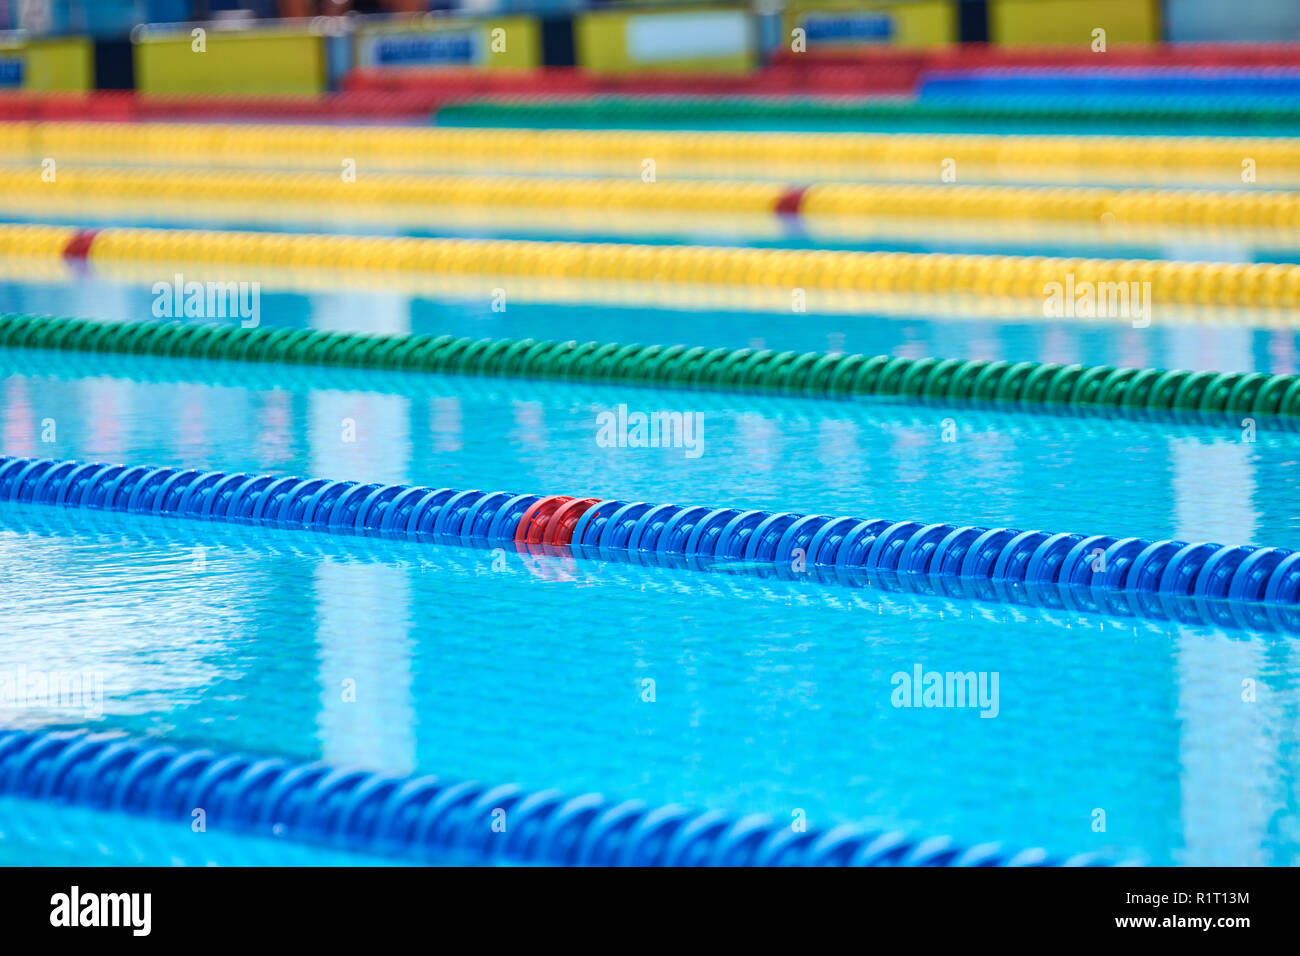 Swimming pool - lane lines. Swimming pool lane marker ...